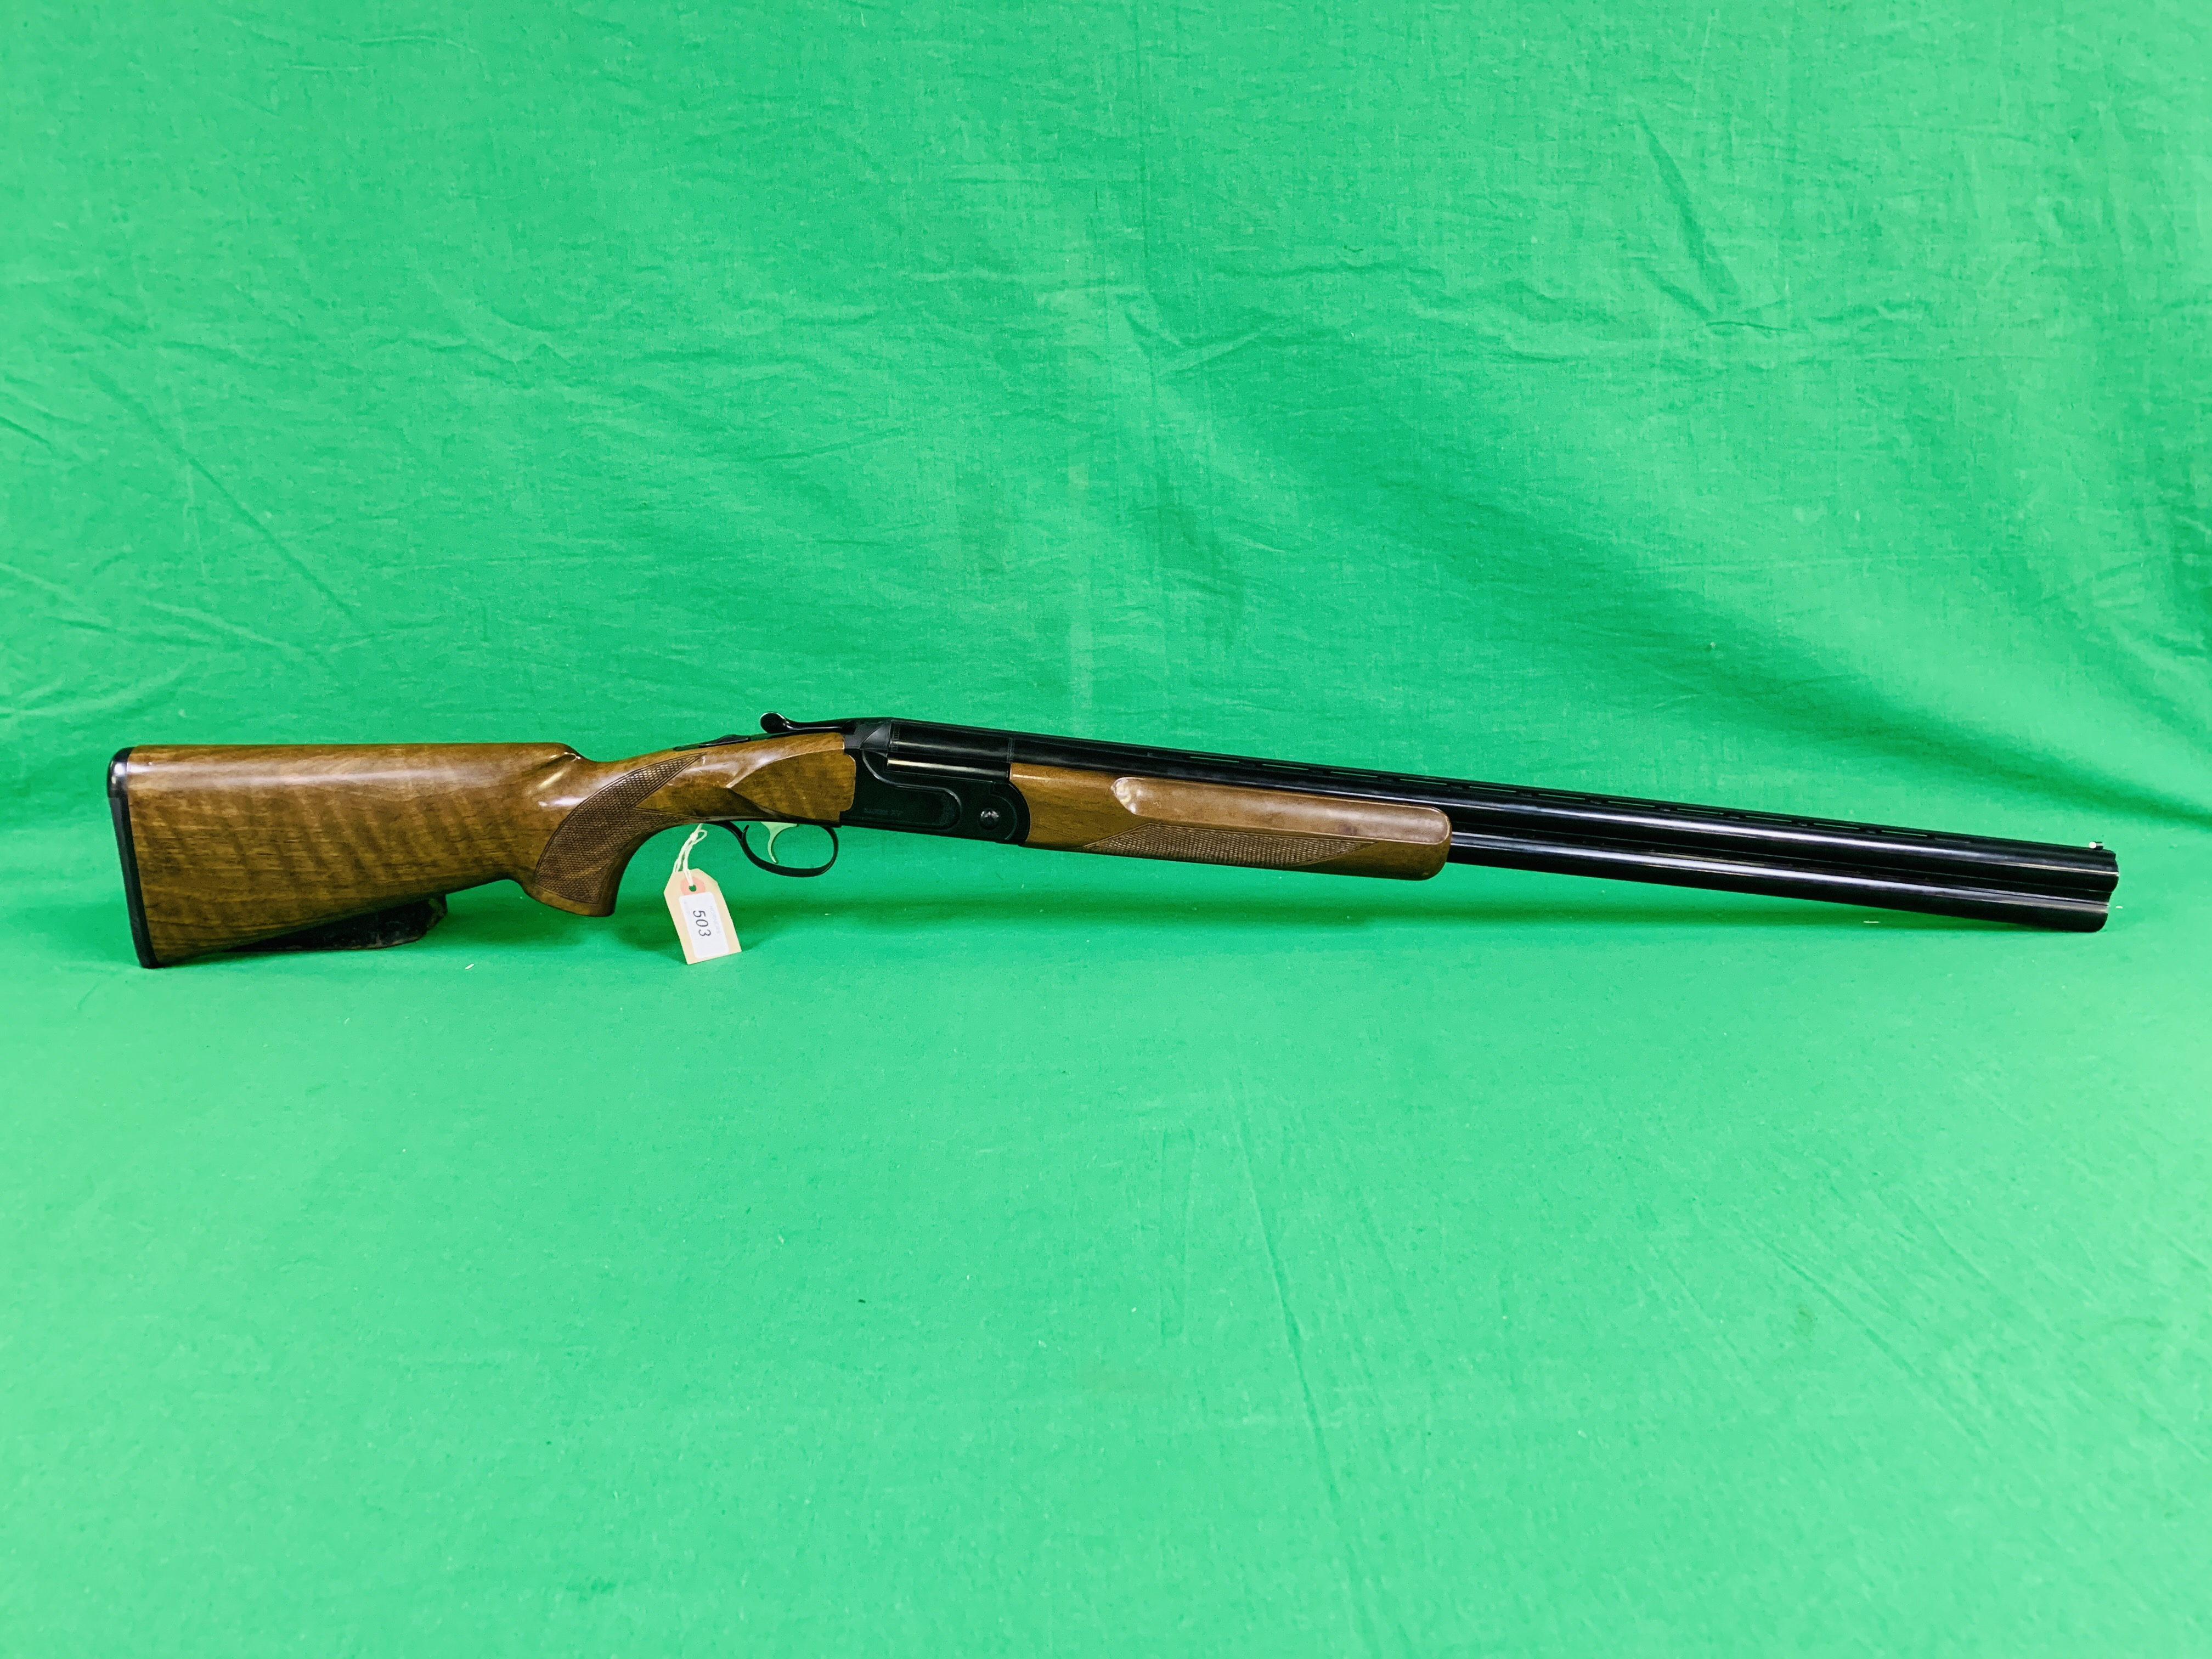 ZAFER MODEL 01612 12 BORE OVER AND UNDER SHOTGUN # 01483, SELECTABLE SINGLE TRIGGER, NON EJECTOR,